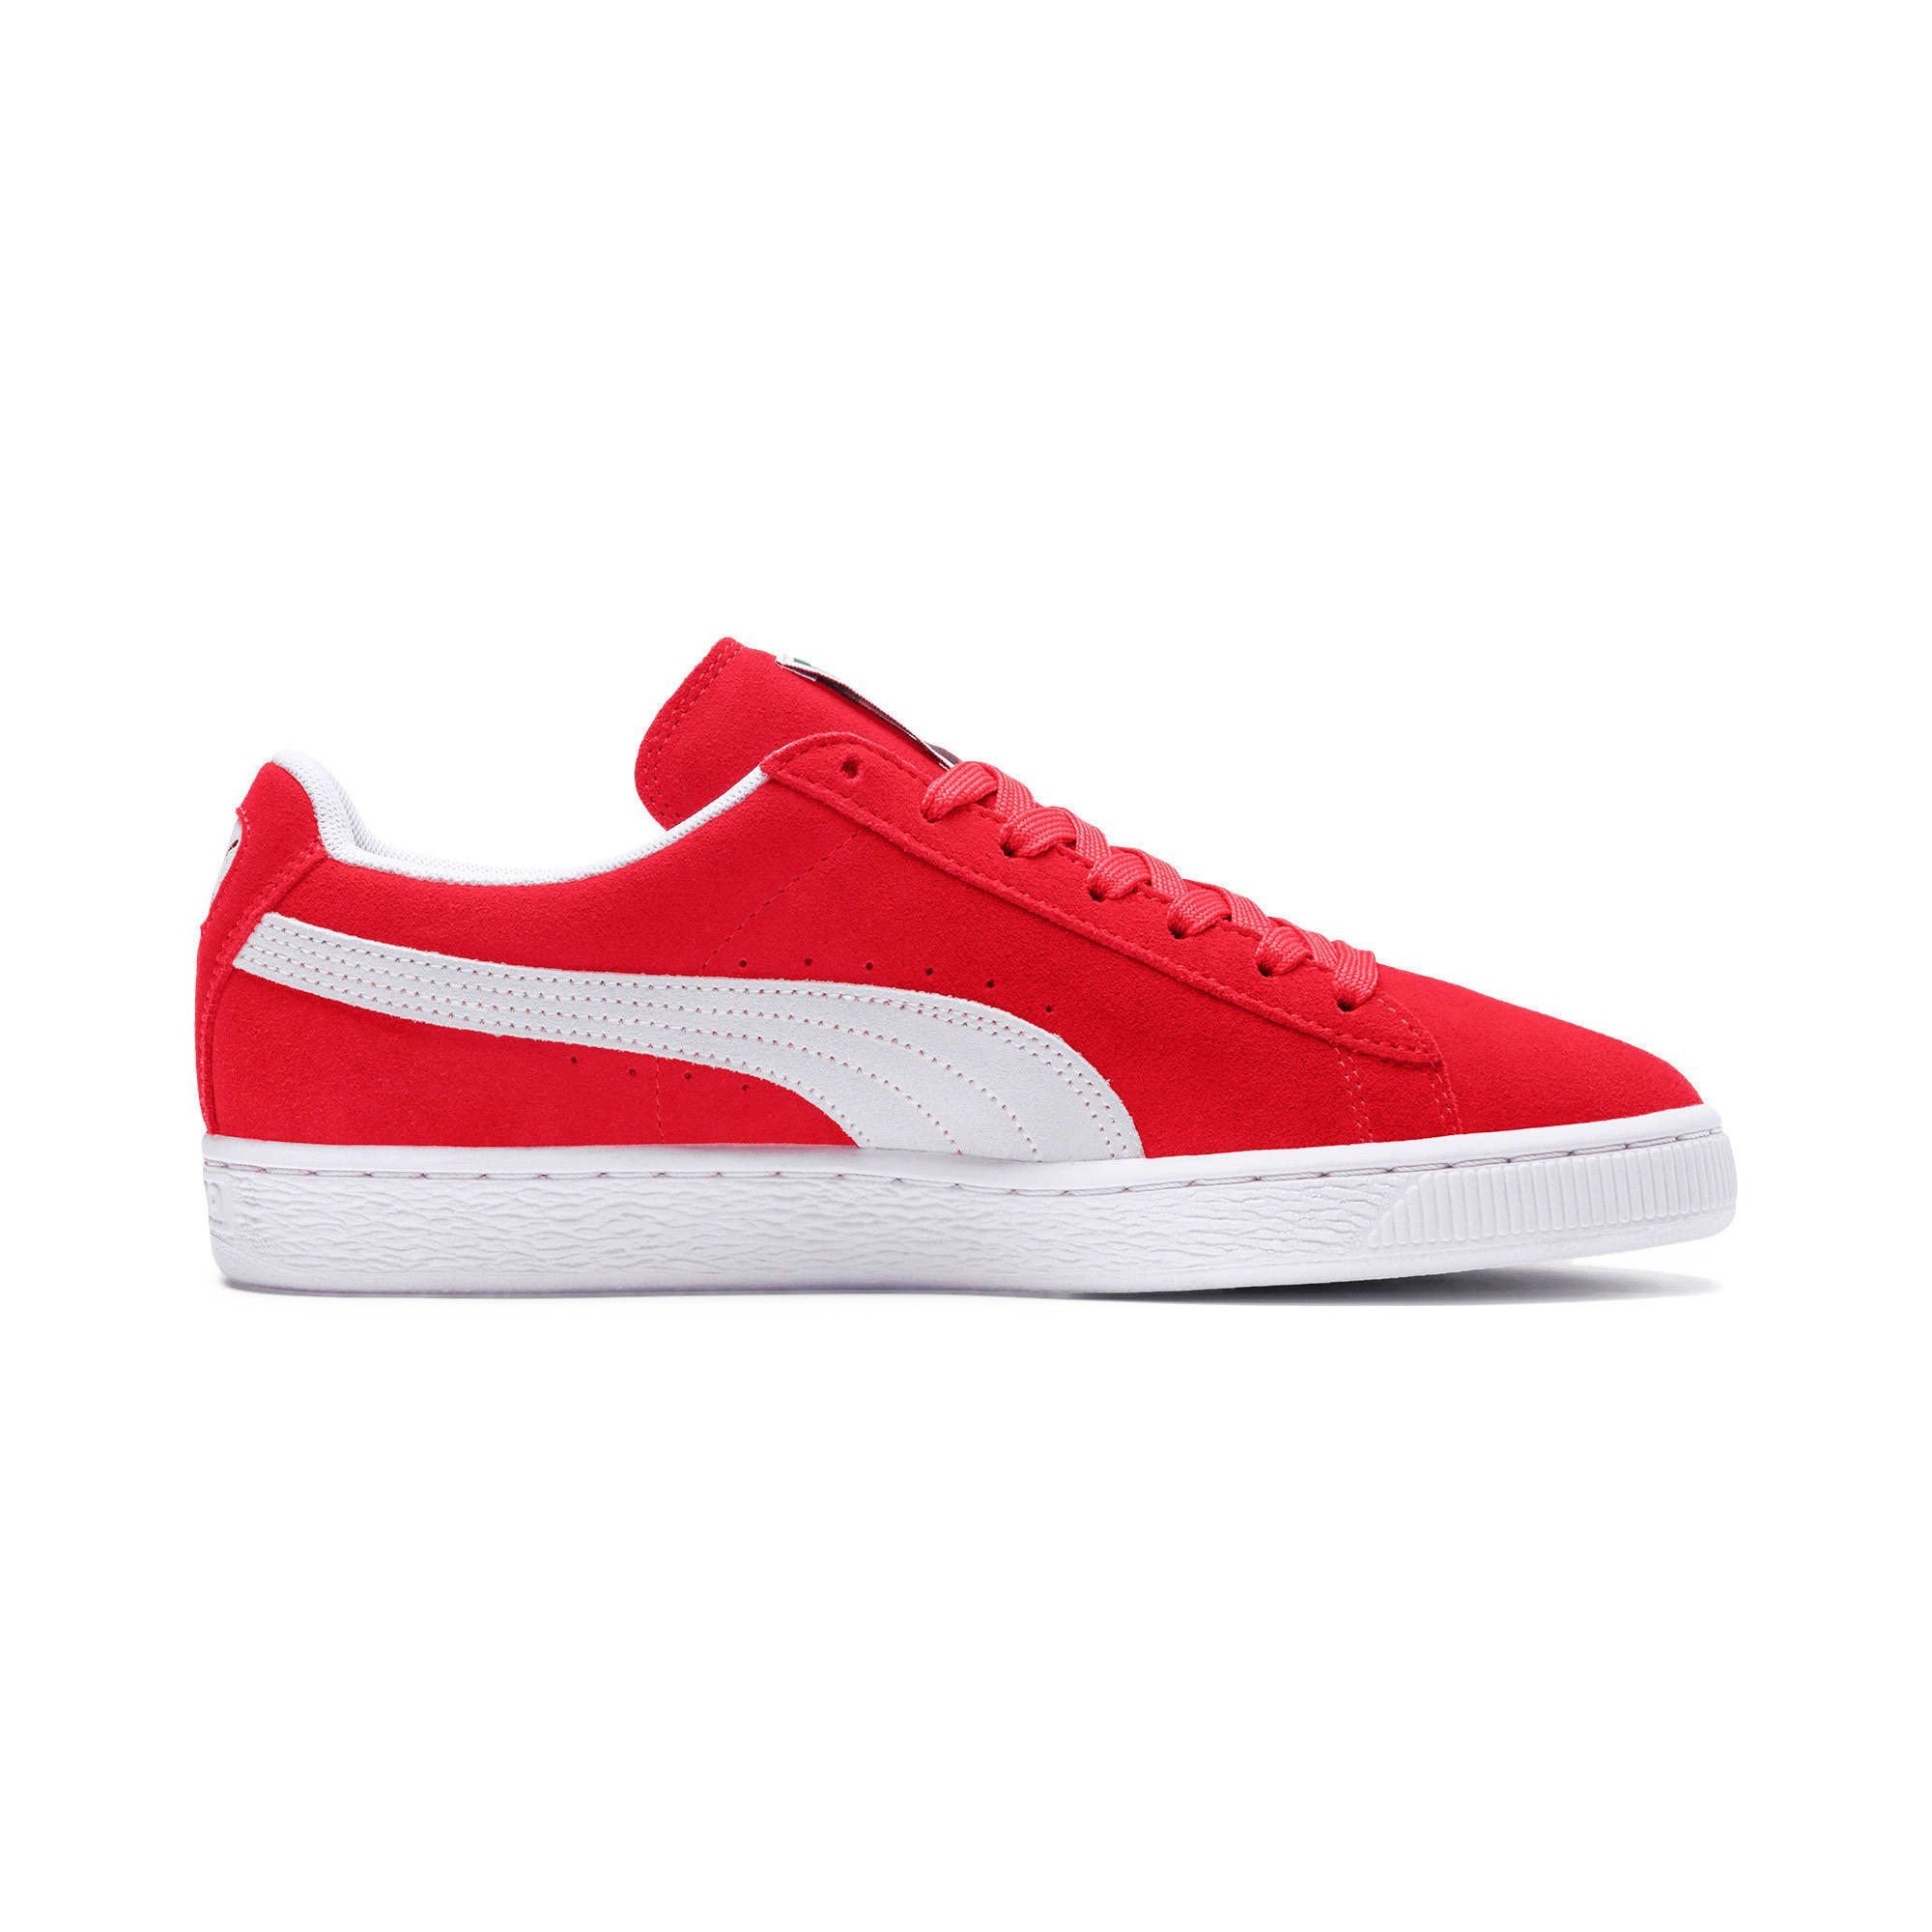 Thumbnail 5 of Suede Classic+ Sneakers, team regal red-white, medium